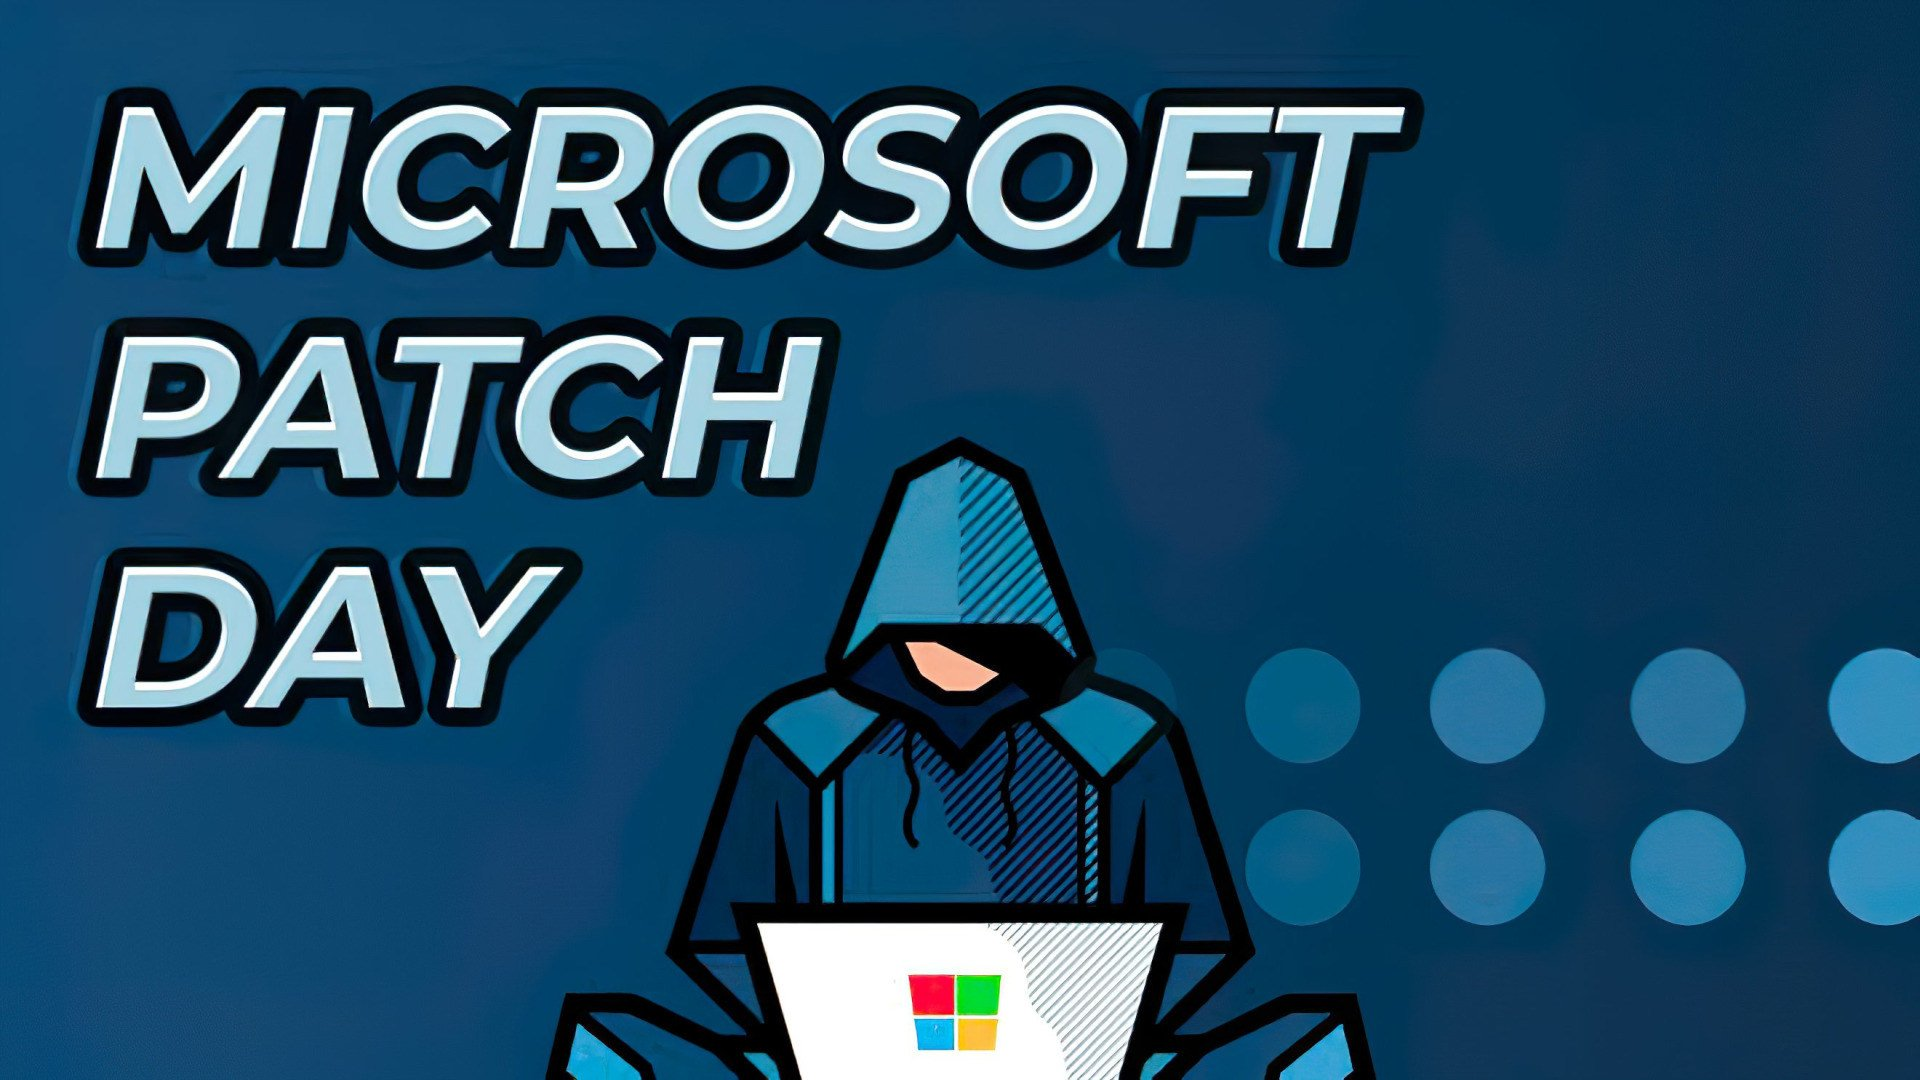 Microsoft, Windows, Hacker, Patch Day, Microsoft Patch Day